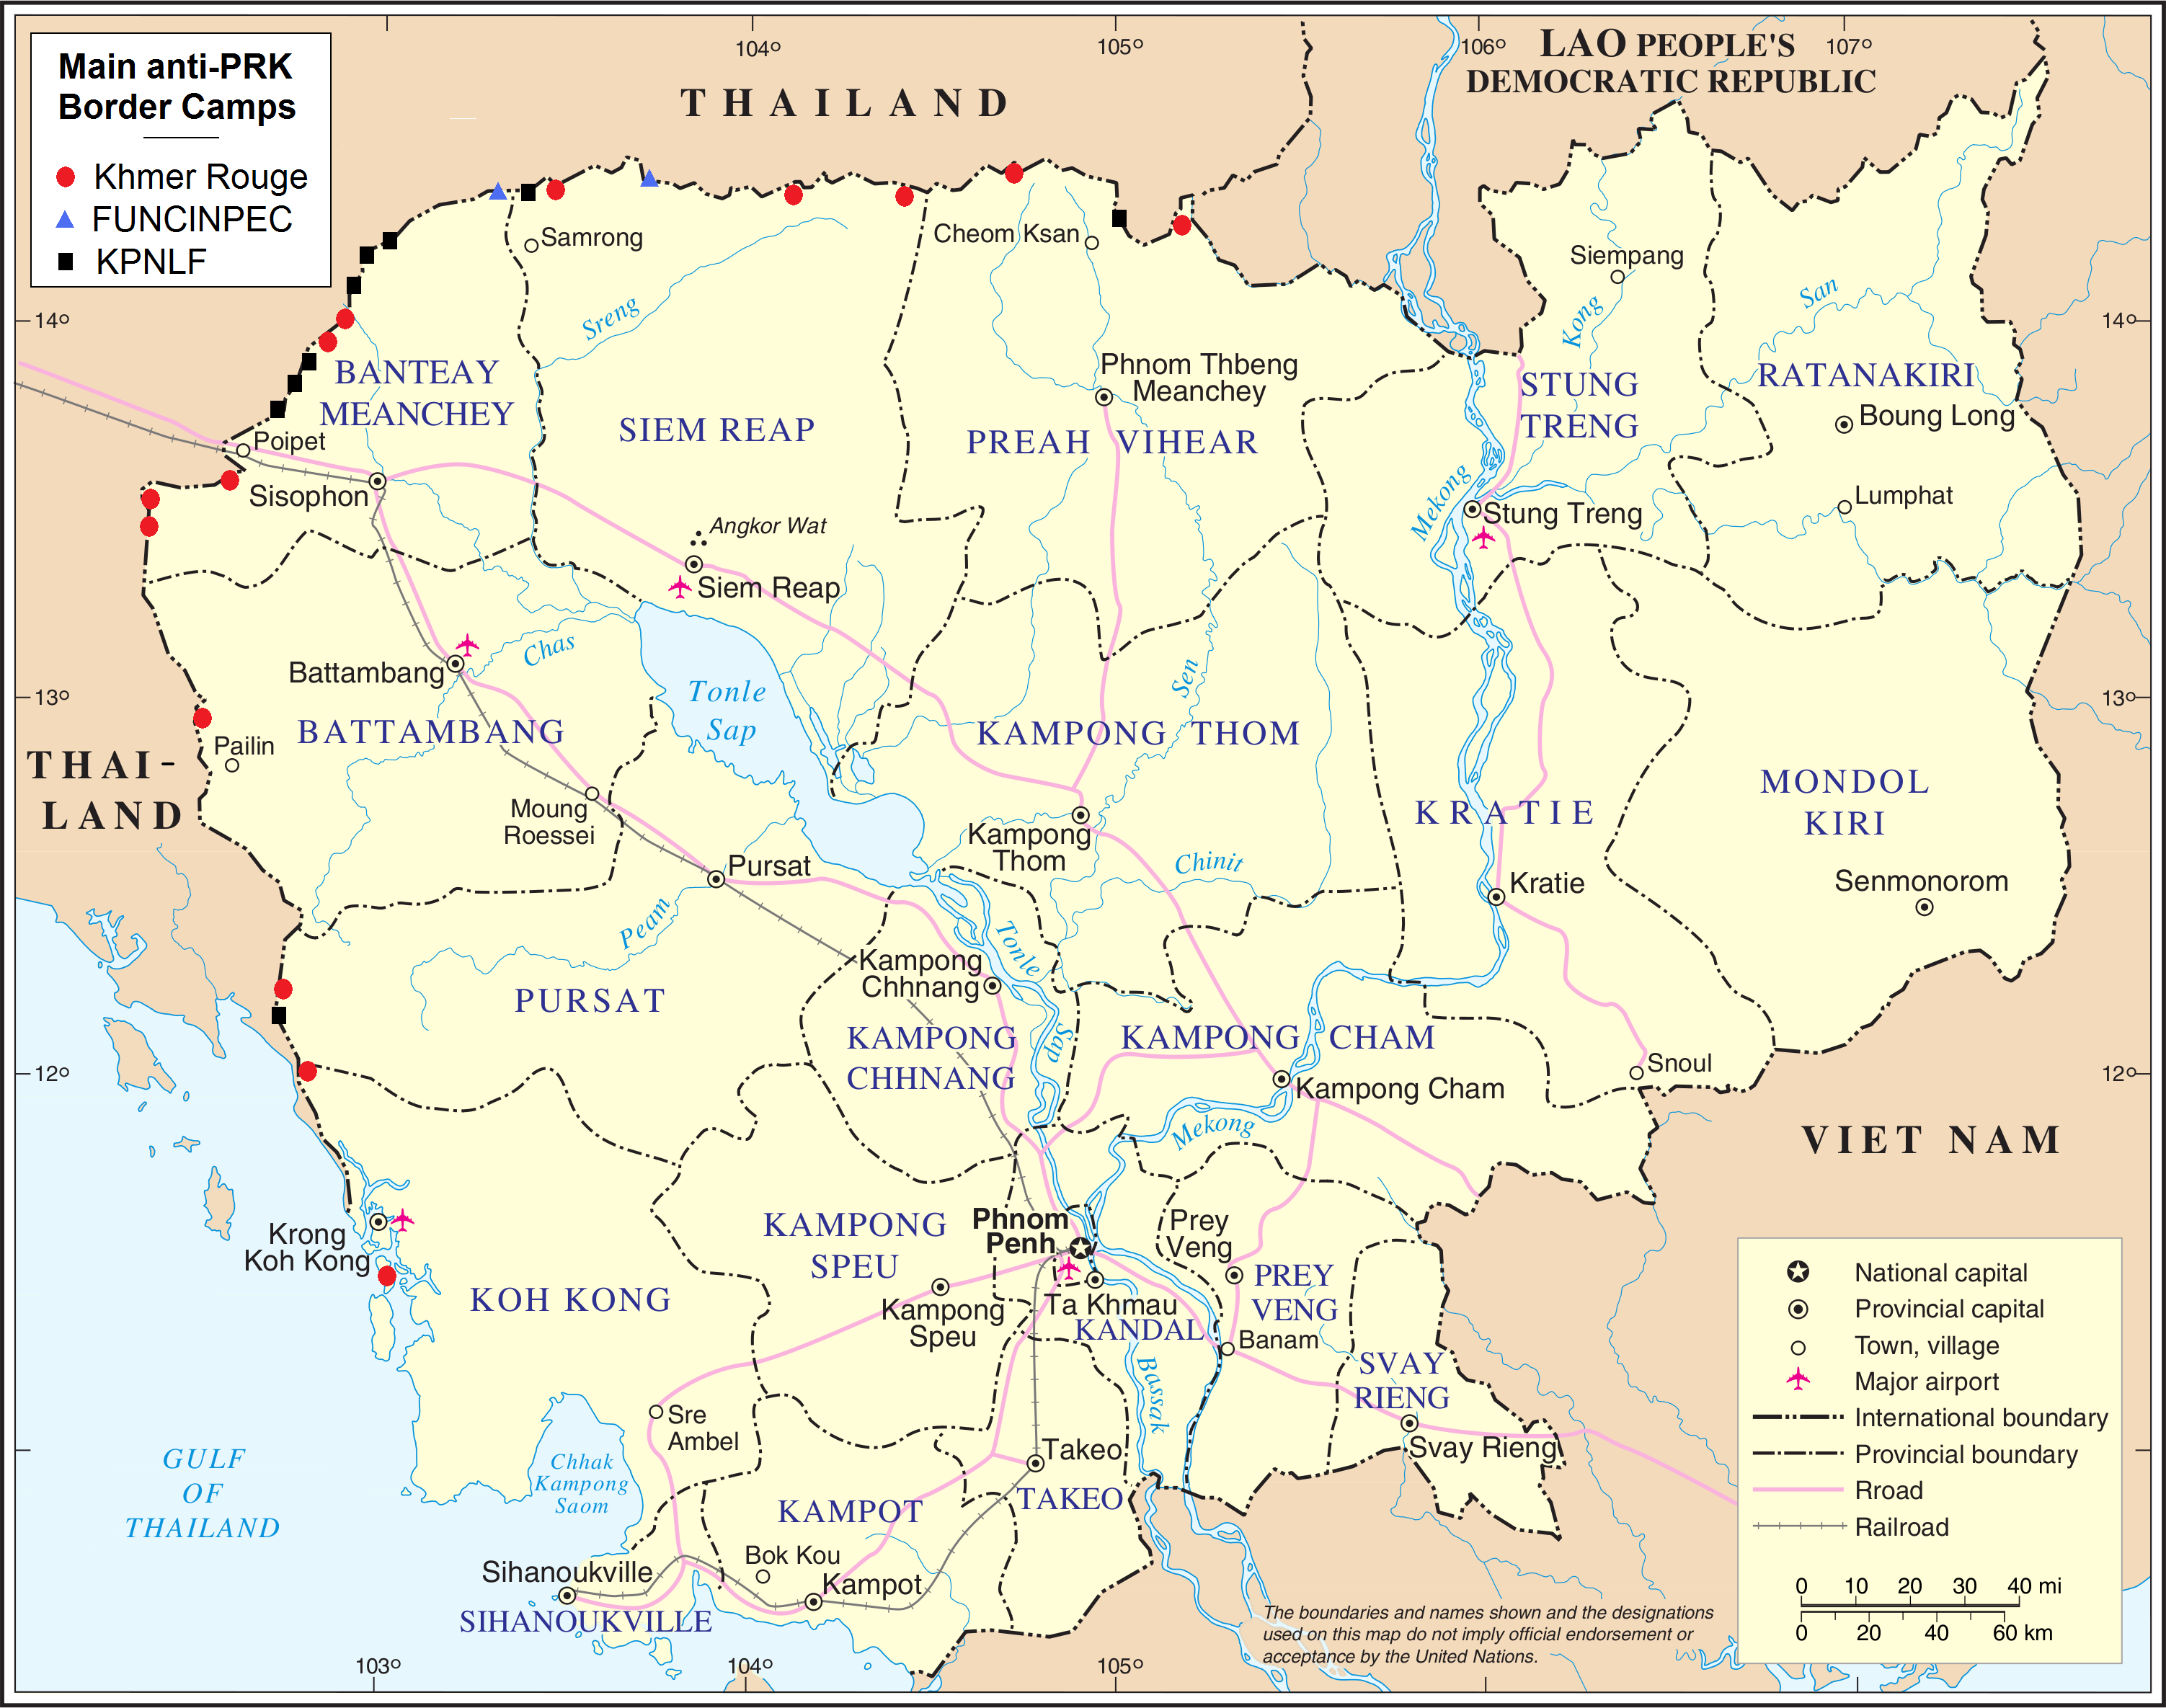 Map indicating main anti-PRK refugee camps along the border with Thailand.